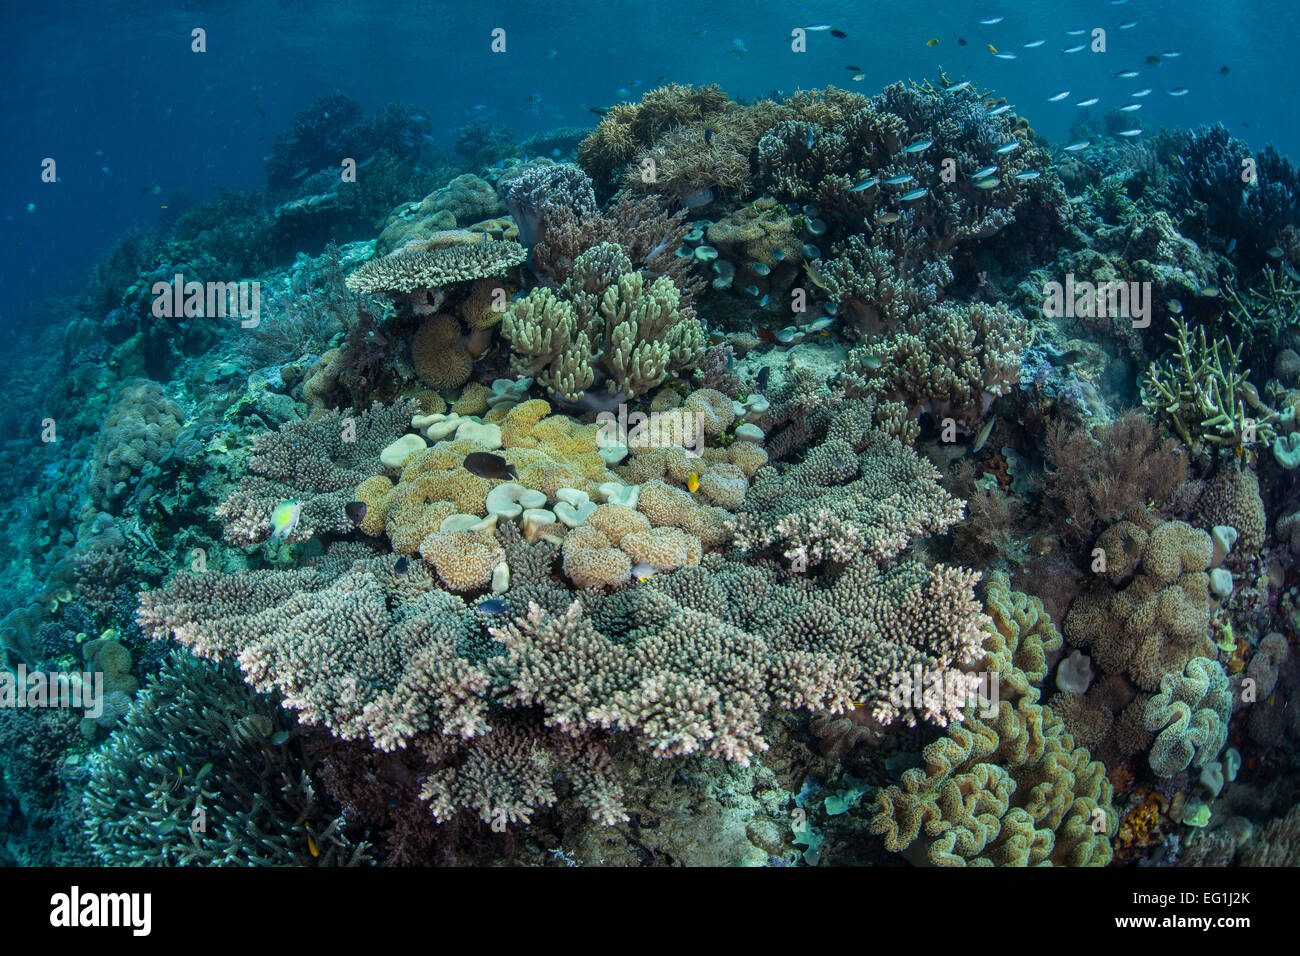 A diverse and healthy coral reef grows in Raja Ampat, Indonesia. This region harbors extraordinary marine biodiversity. - Stock Image